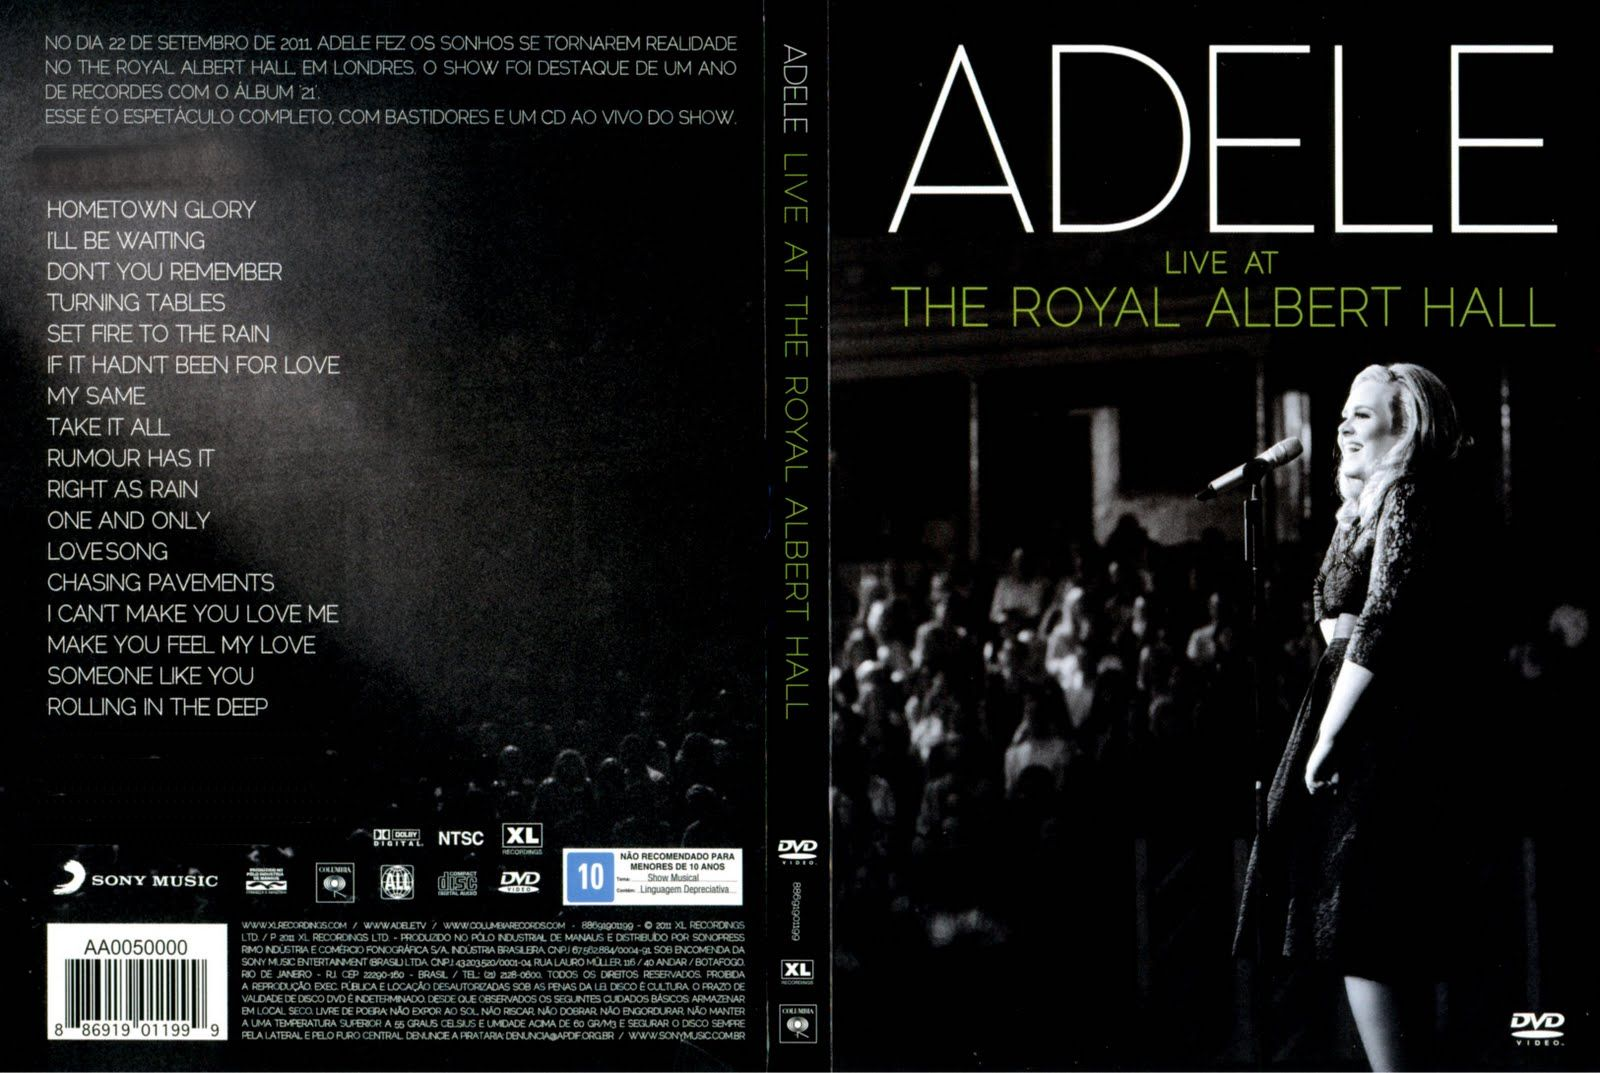 http://2.bp.blogspot.com/-Je3mev2Sdco/T06rxTQQImI/AAAAAAAAARw/NMzq6bsL5Jc/s1600/Adele+-+Live+At+The+Royal+Albert+Hall.jpg